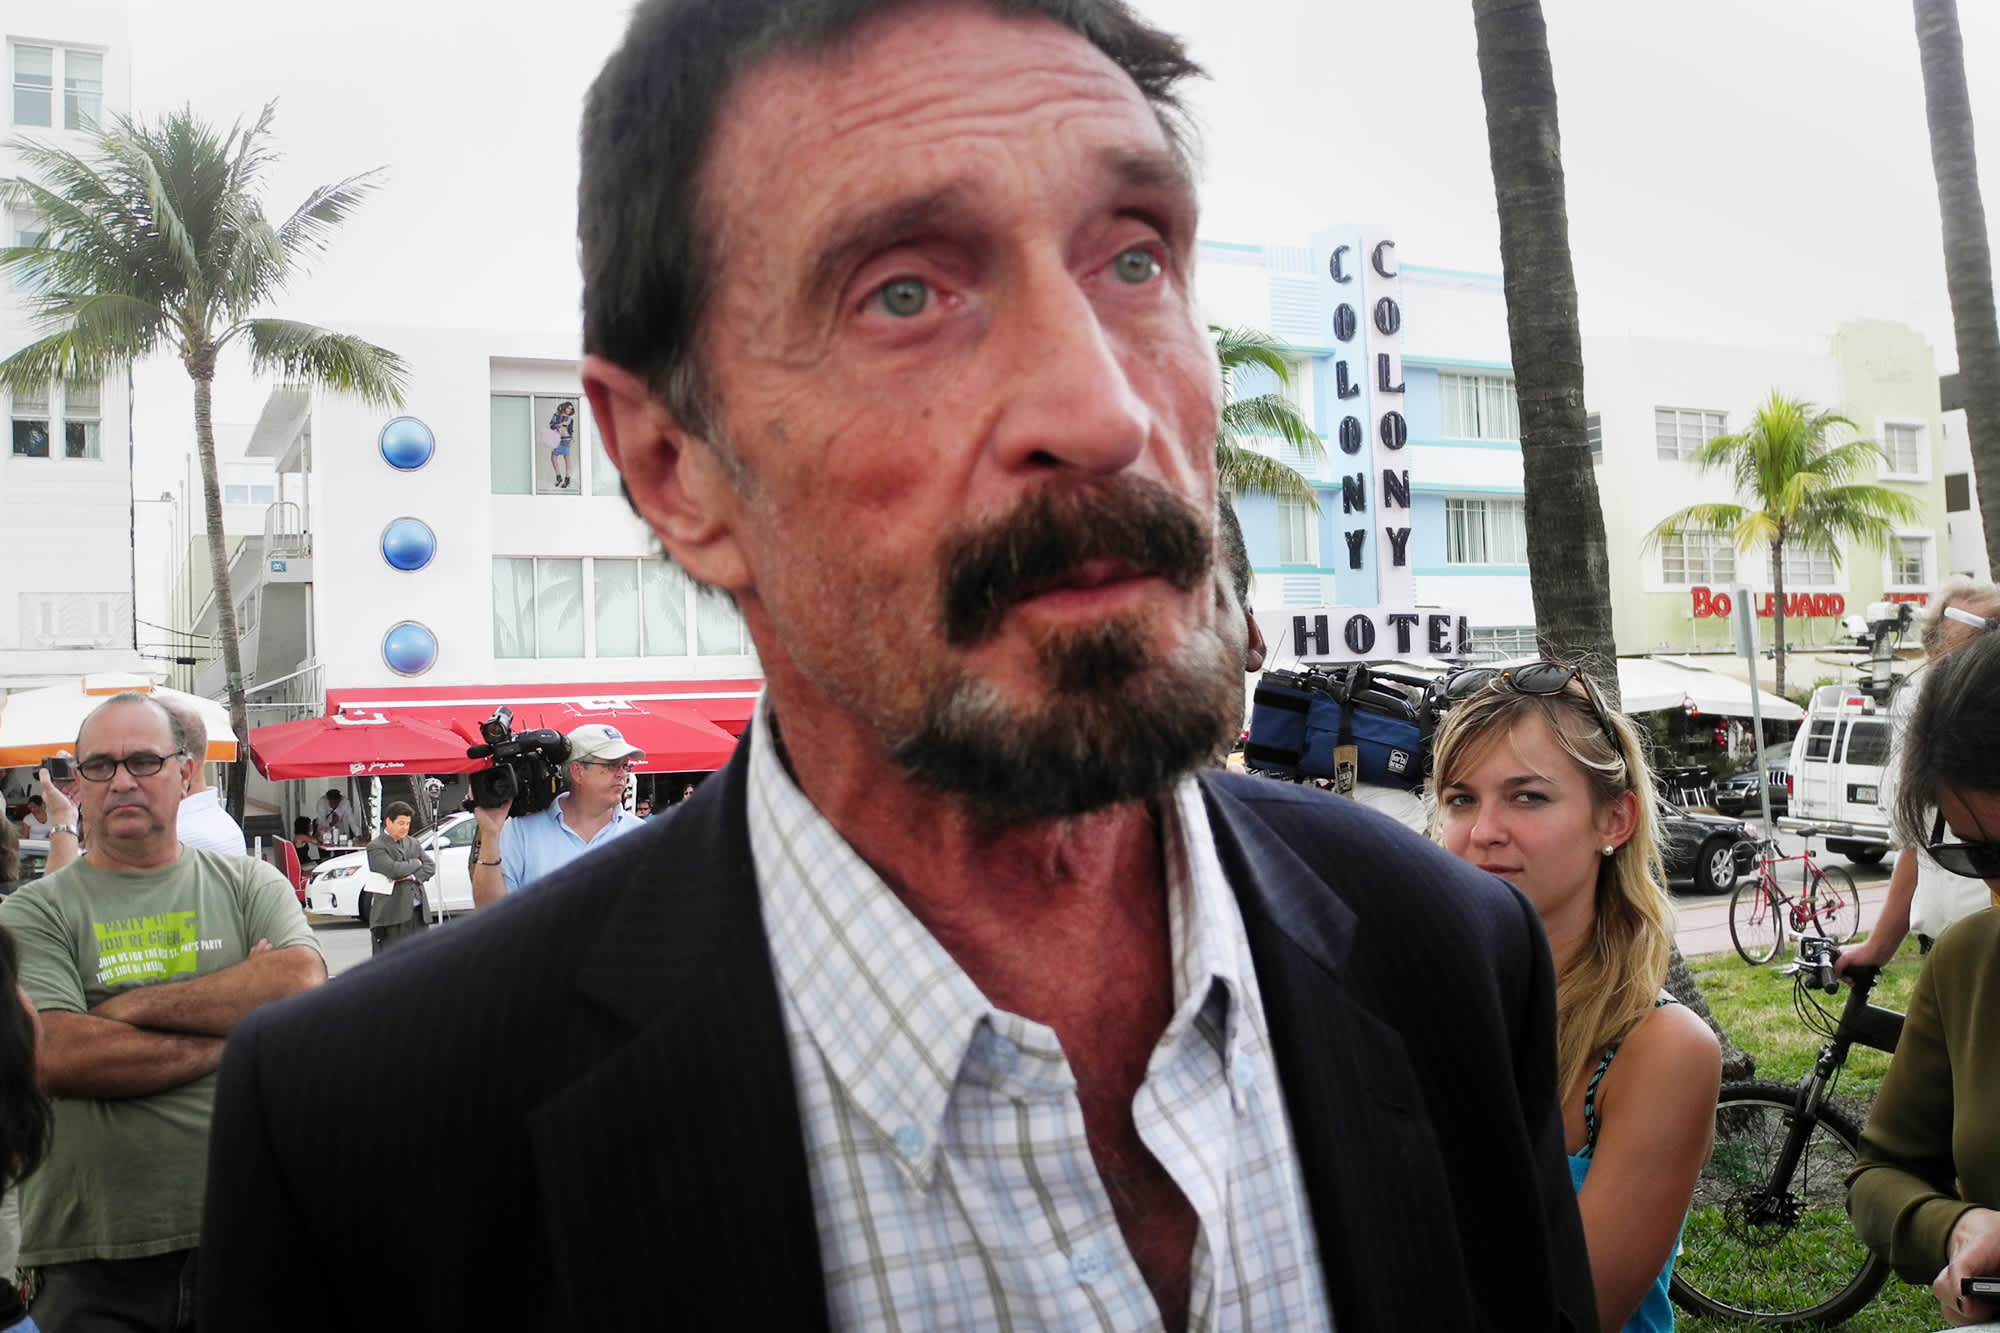 John McAfee indicted on cryptocurrency fraud charges